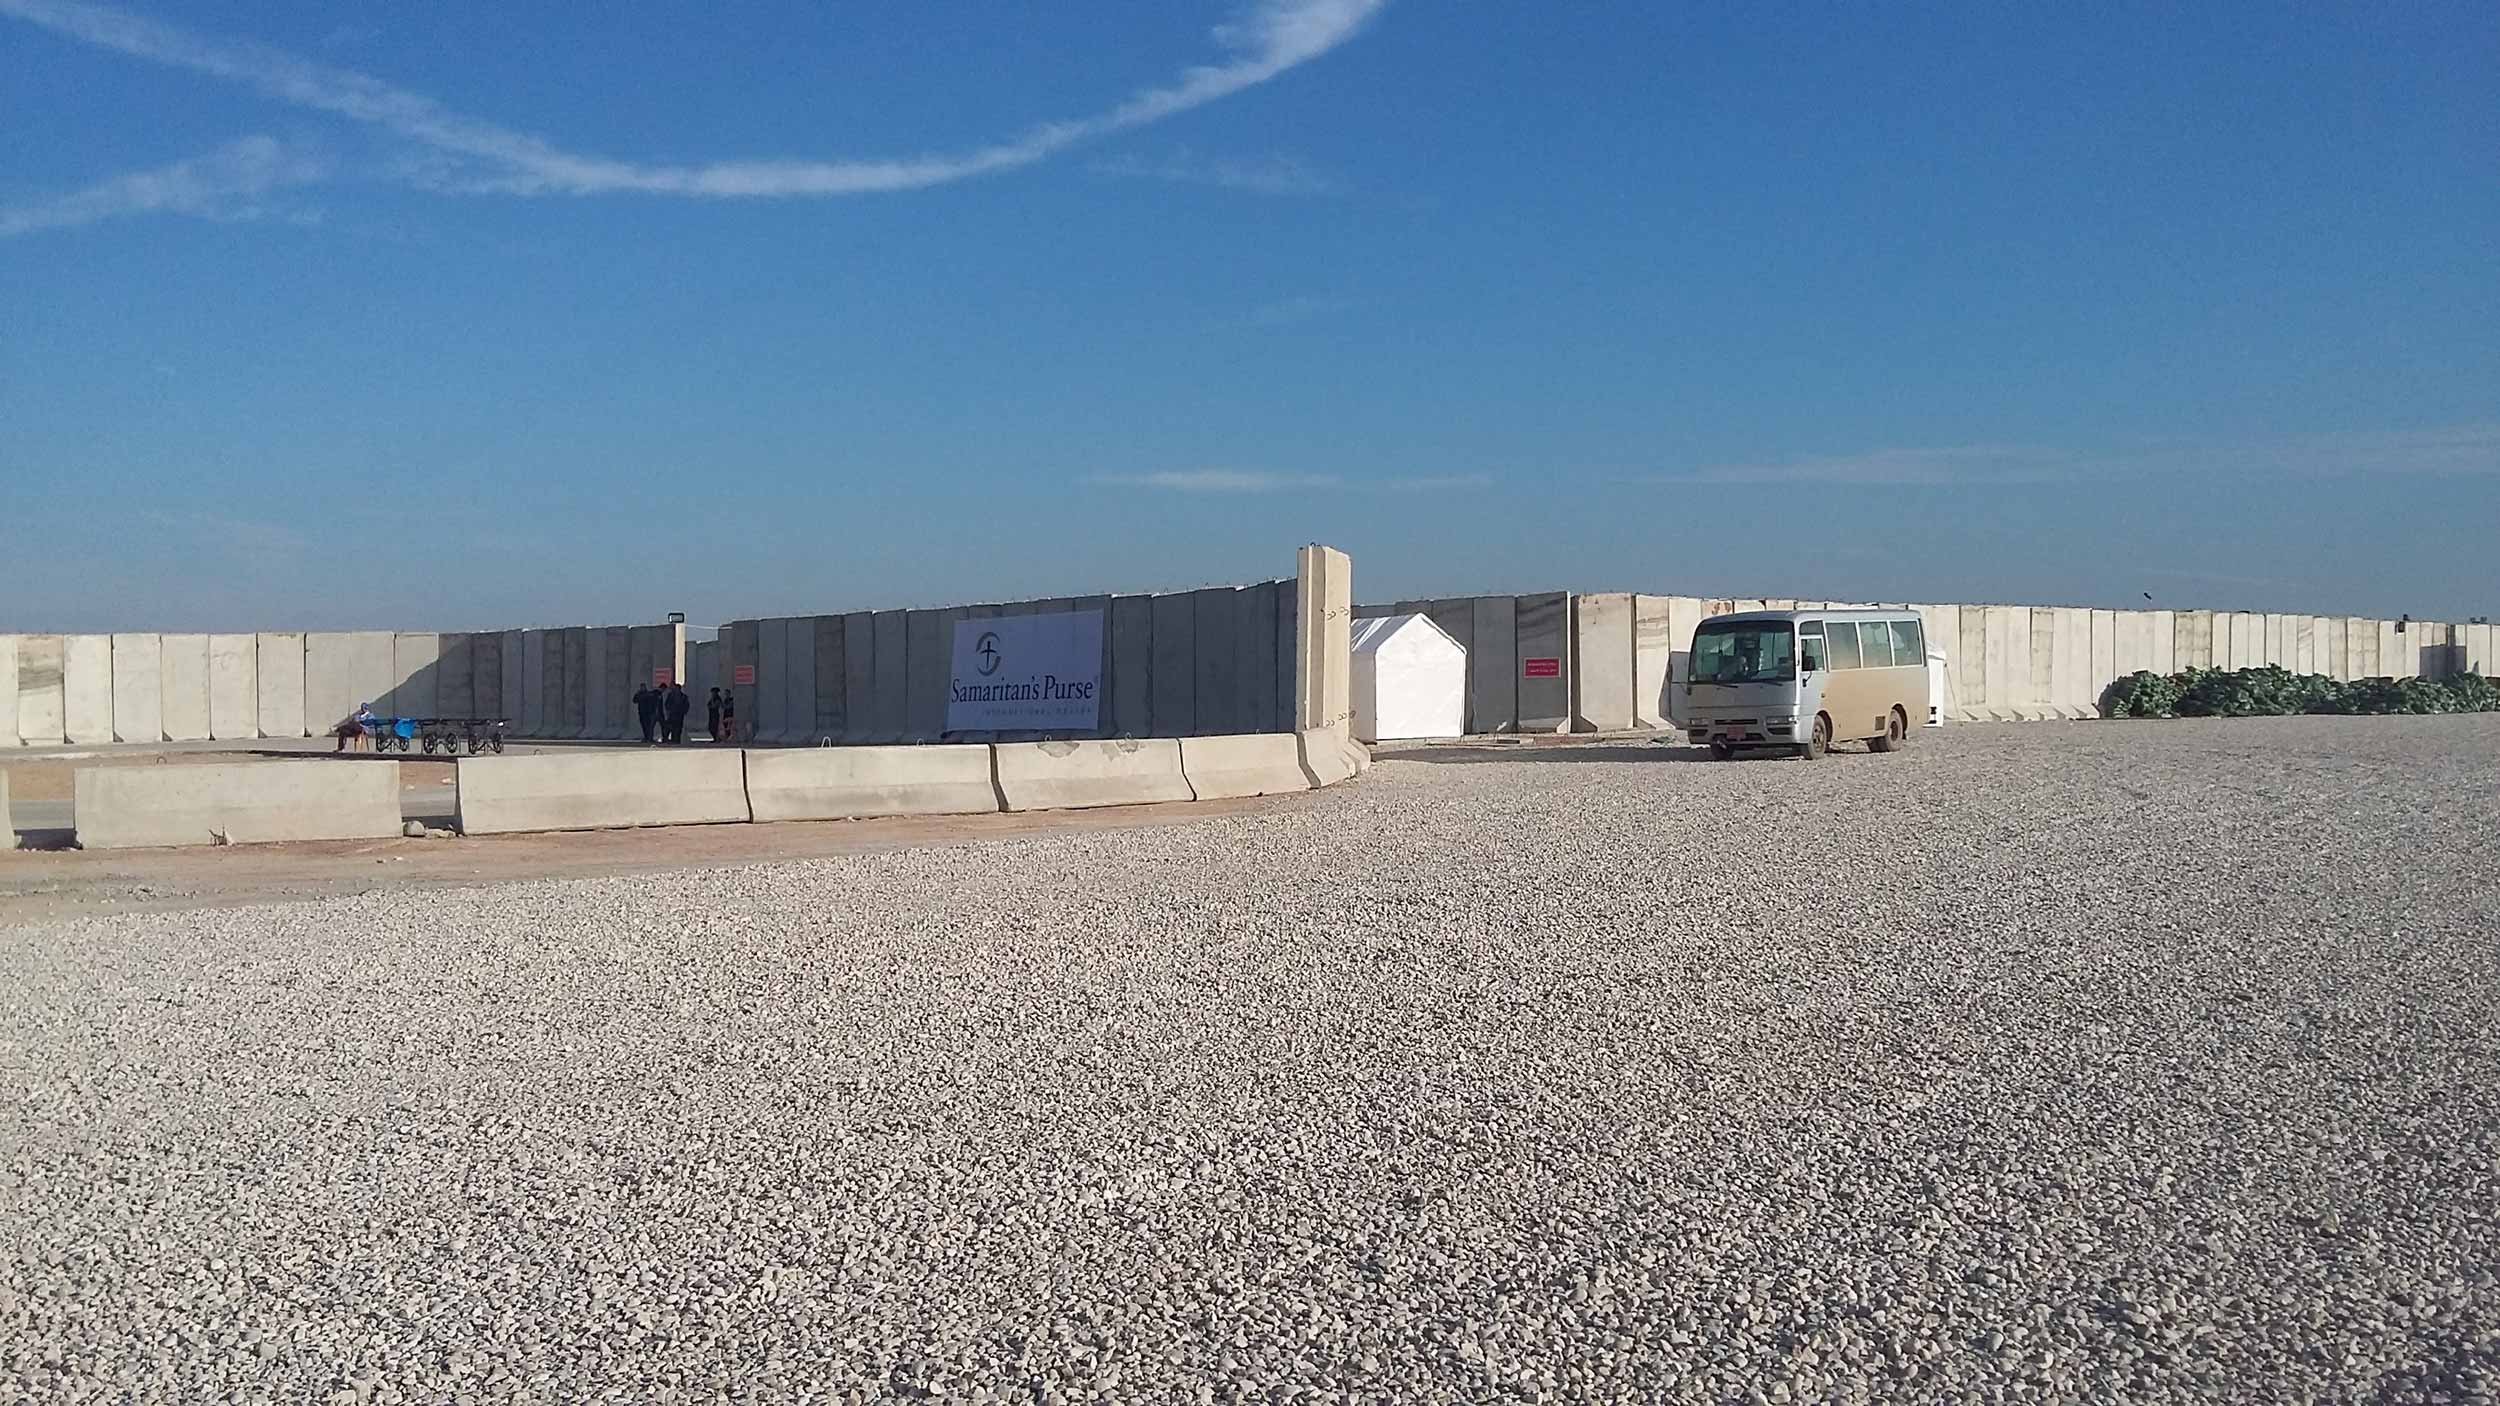 Samaritan's Purse compound protected against artillery fire.